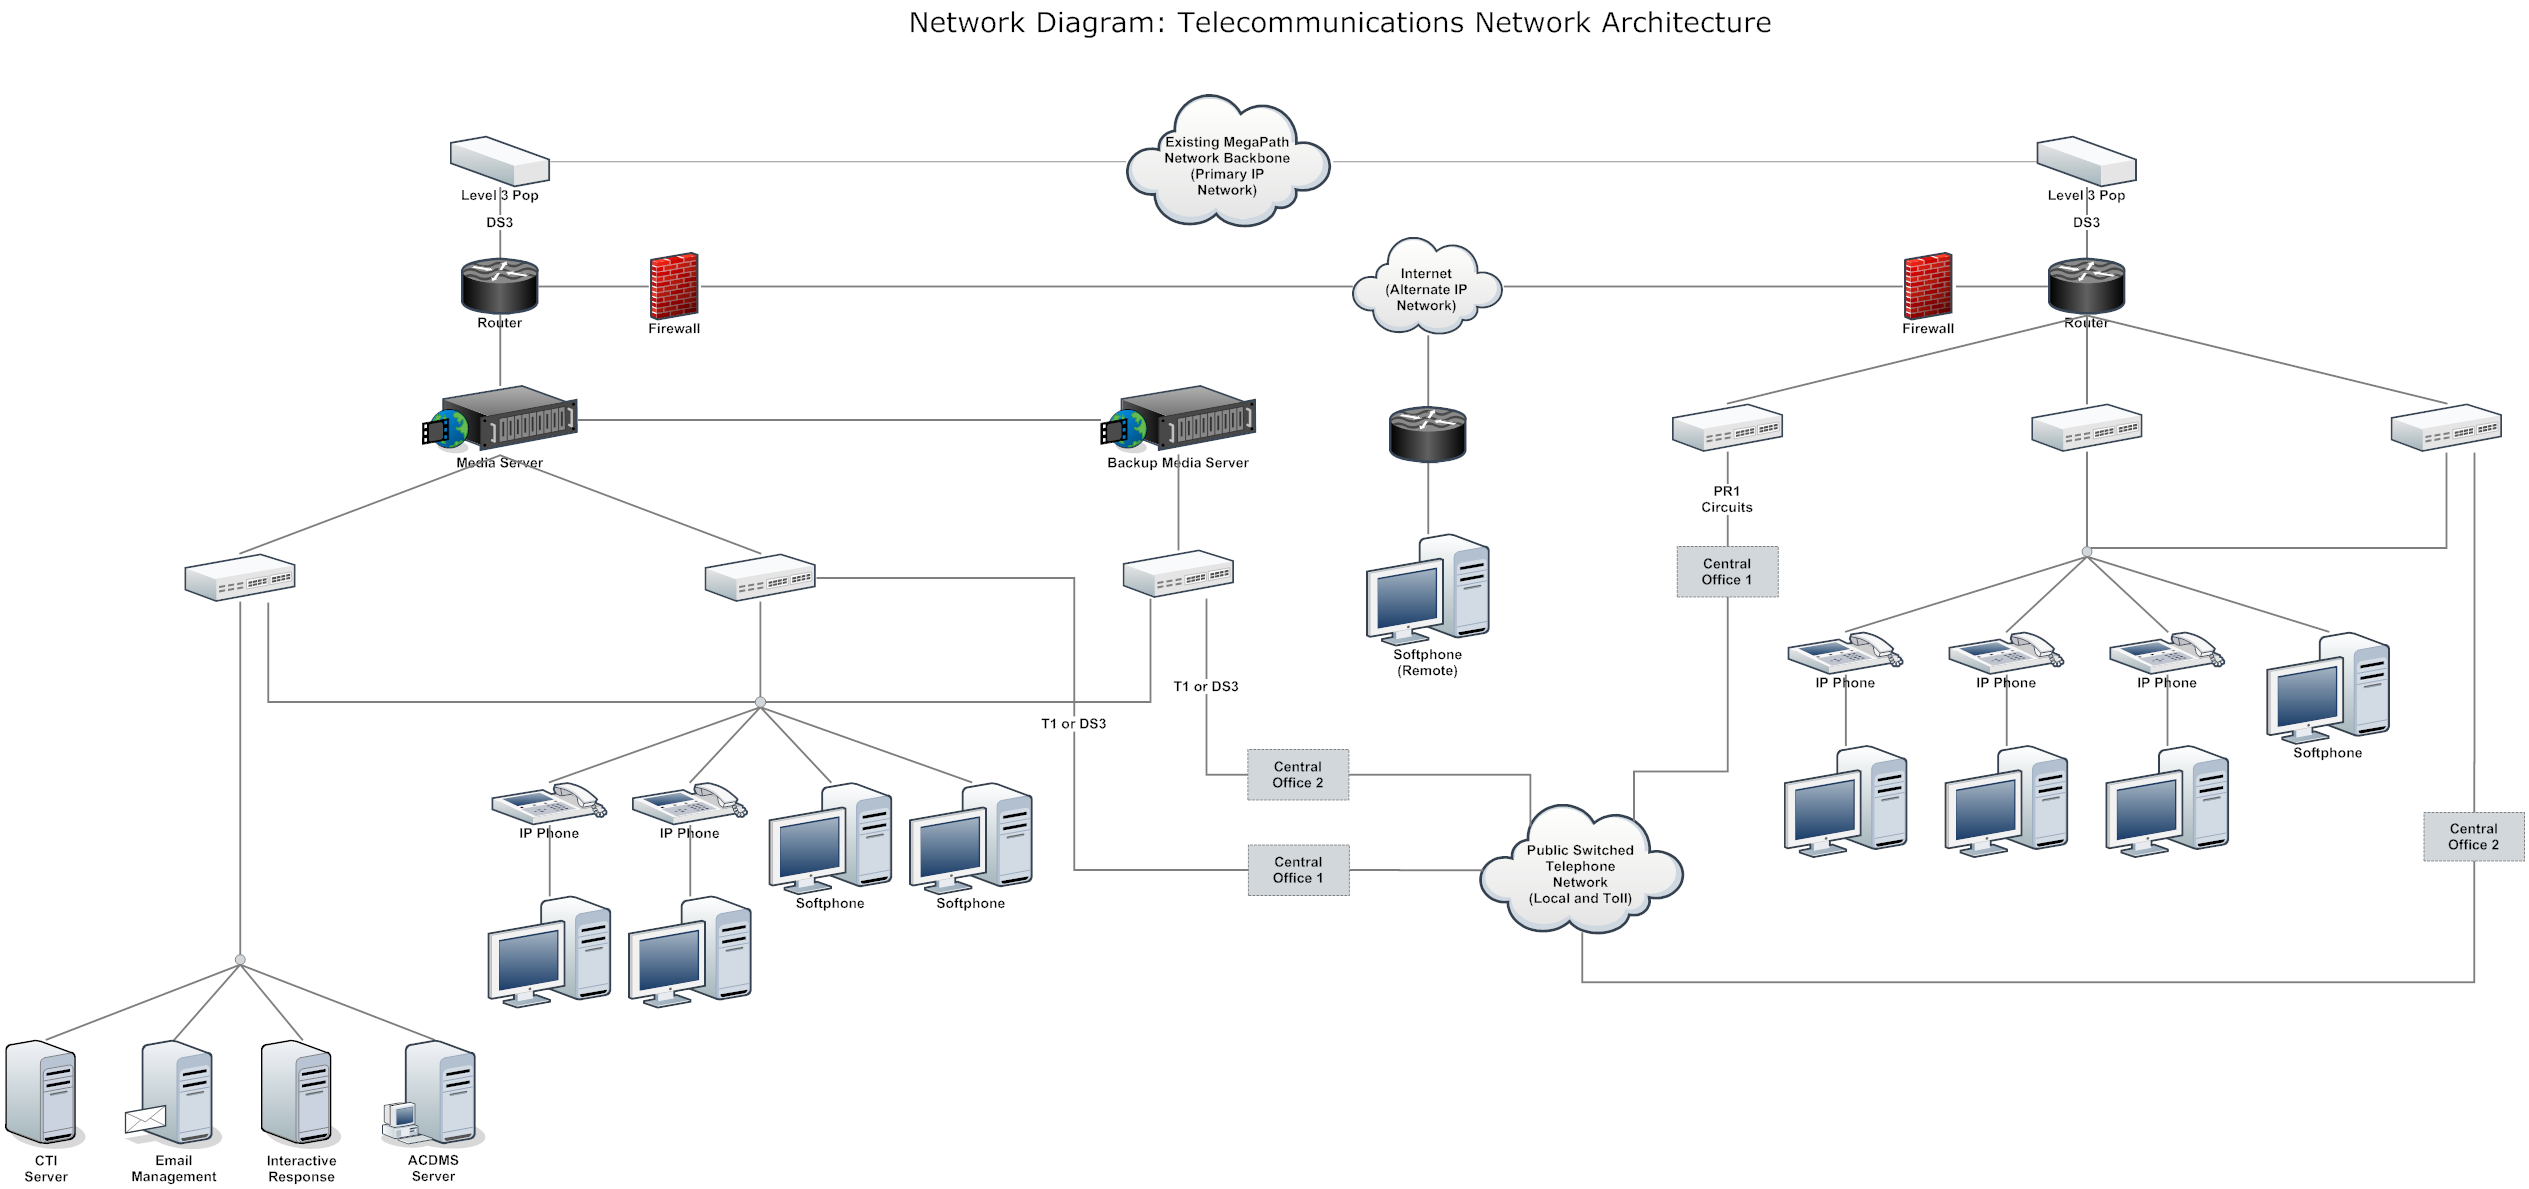 small resolution of network diagram example telecommunnications network architecture